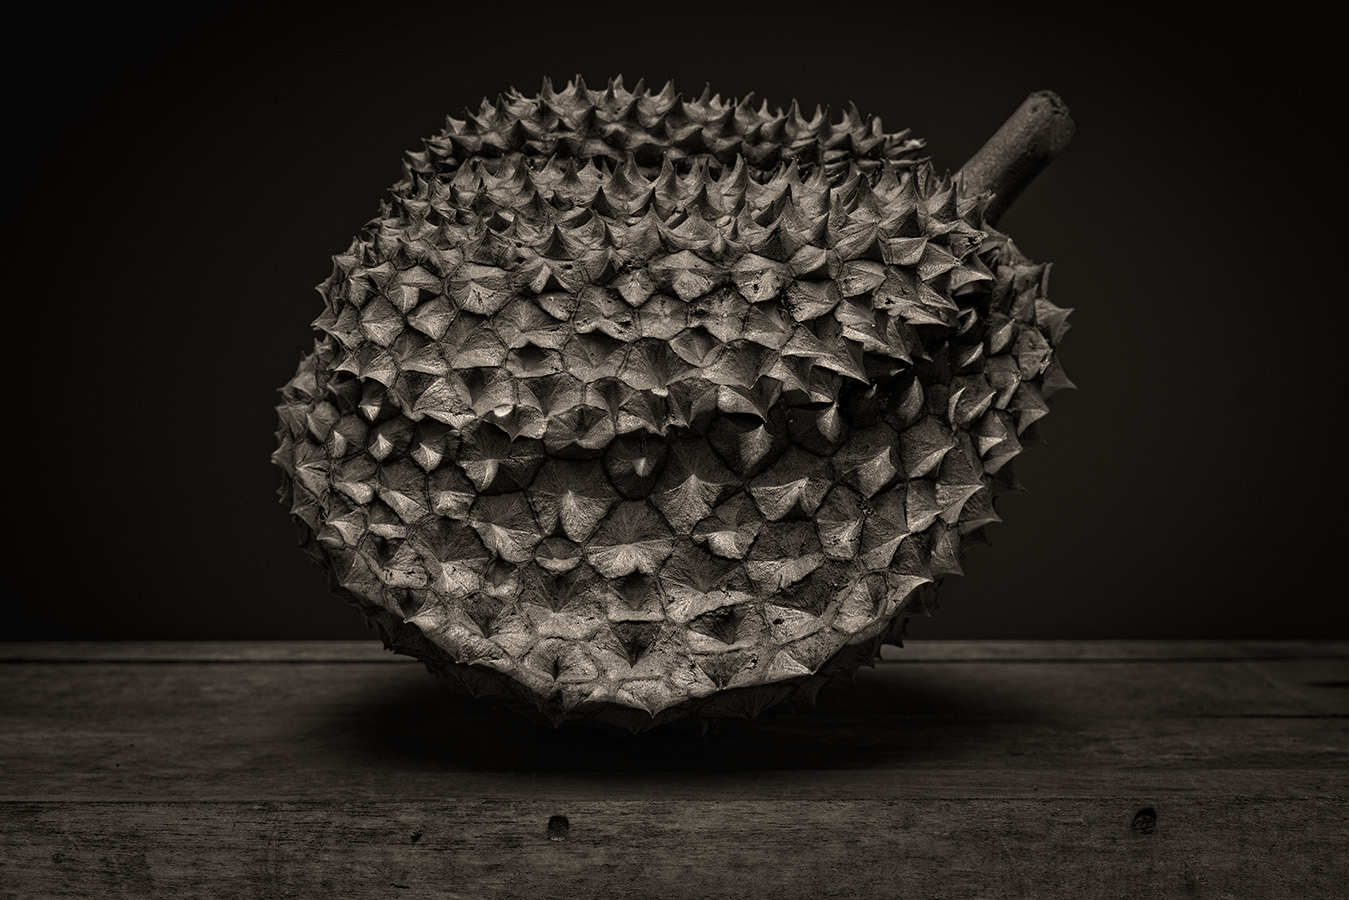 Durian Fruit B&W